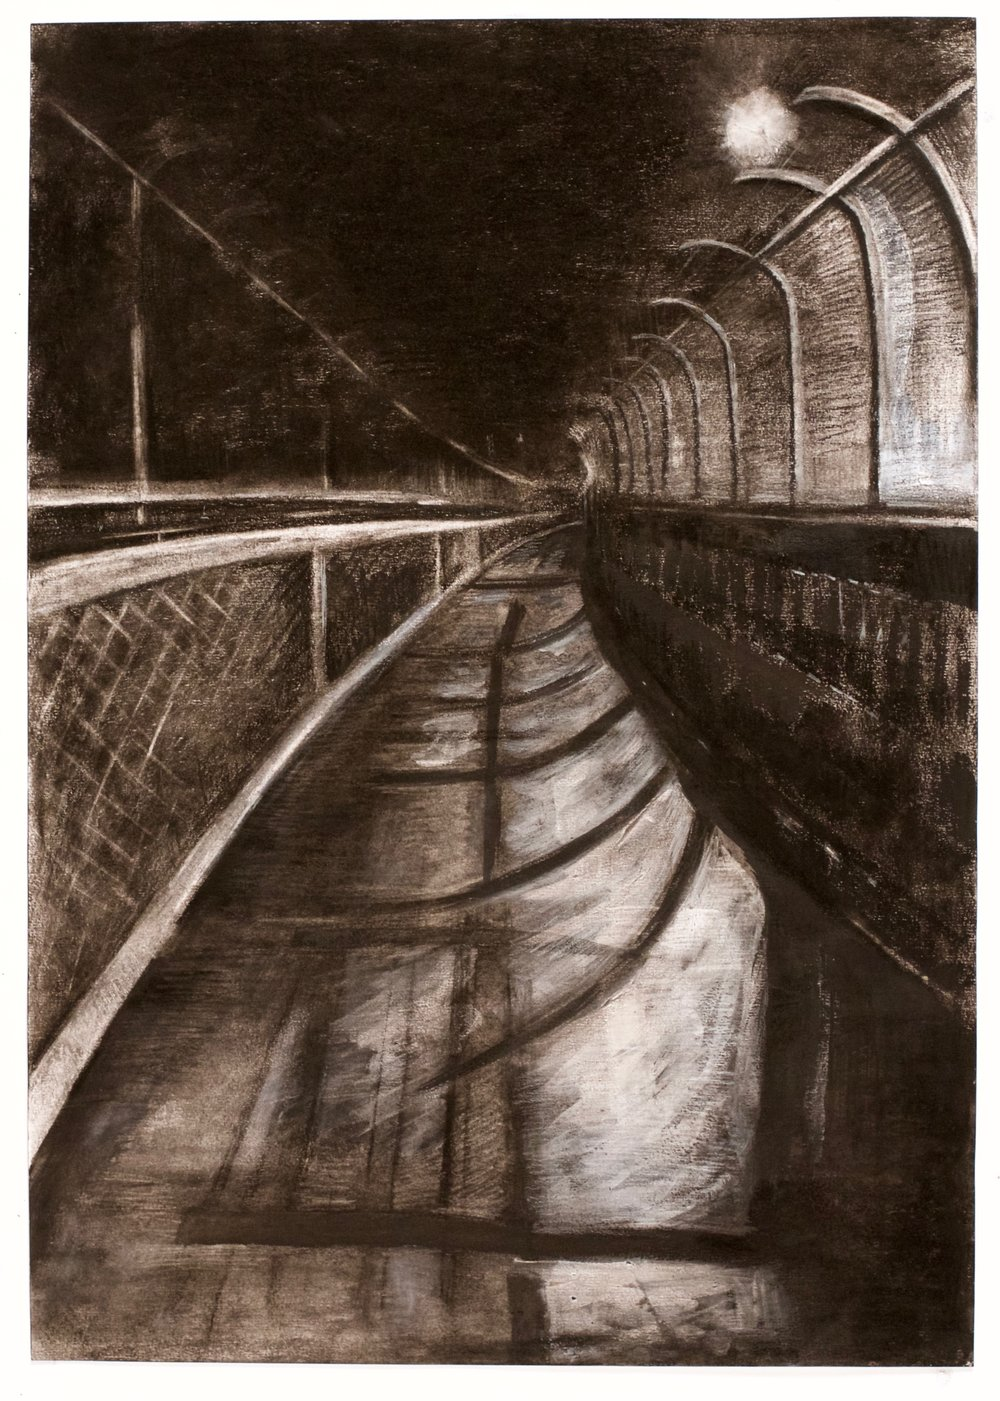 collected space V , 2015, charcoal, goache and conte crayon, 59.4 x 42 cm